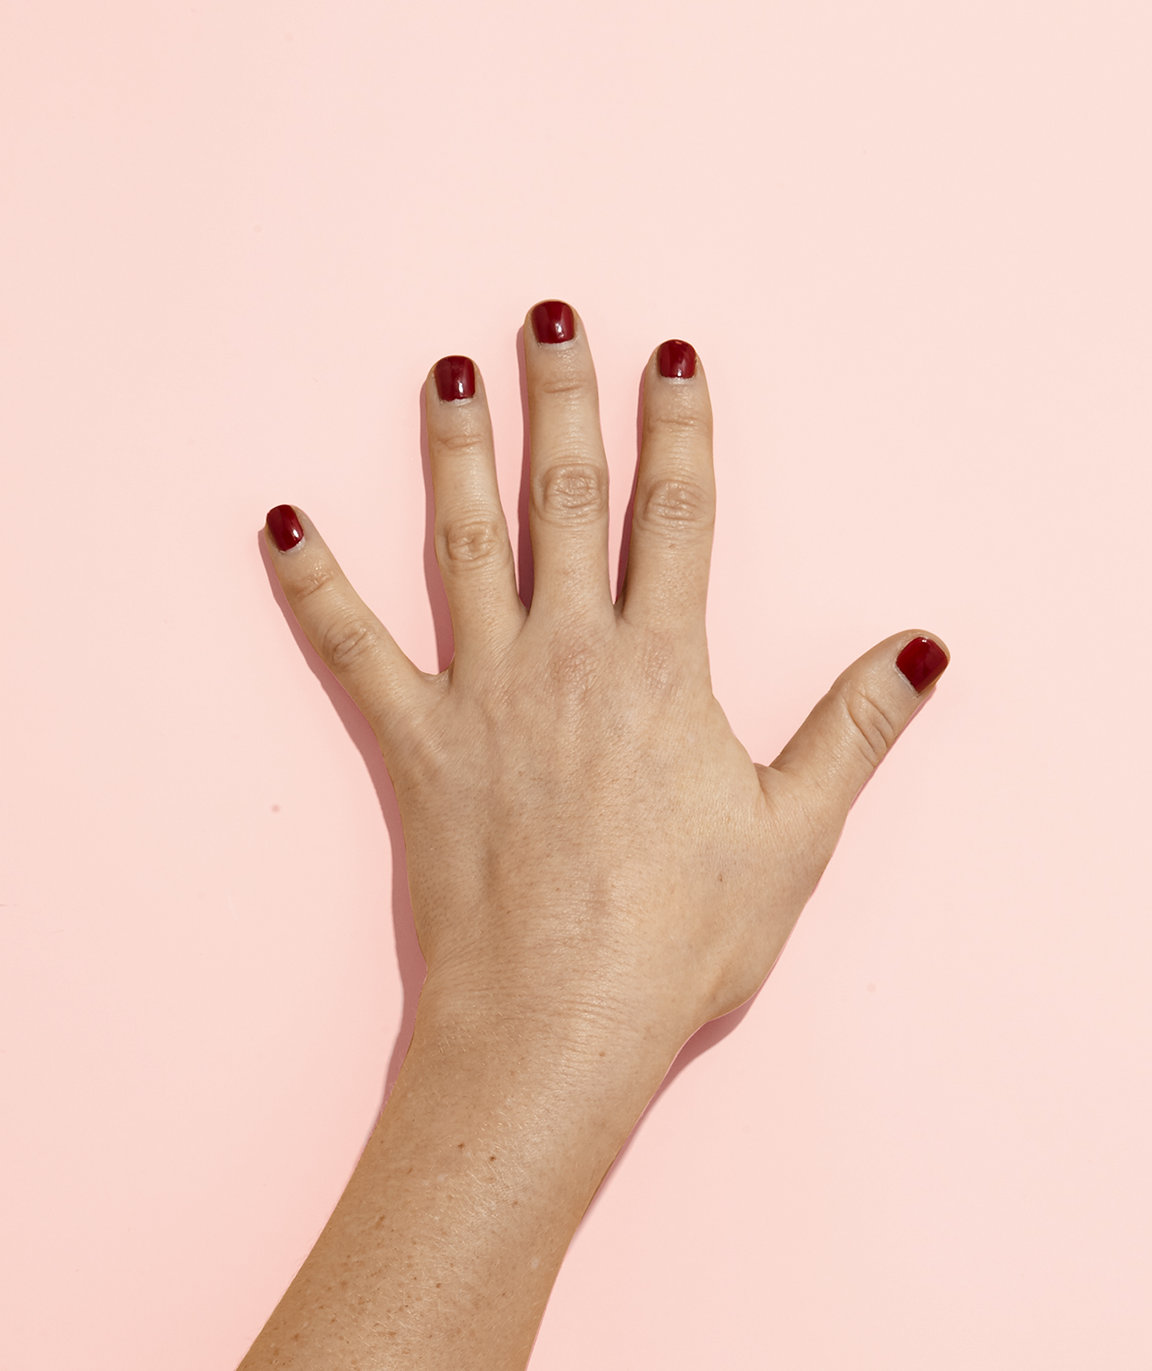 8 Fixes For Younger Looking Hands